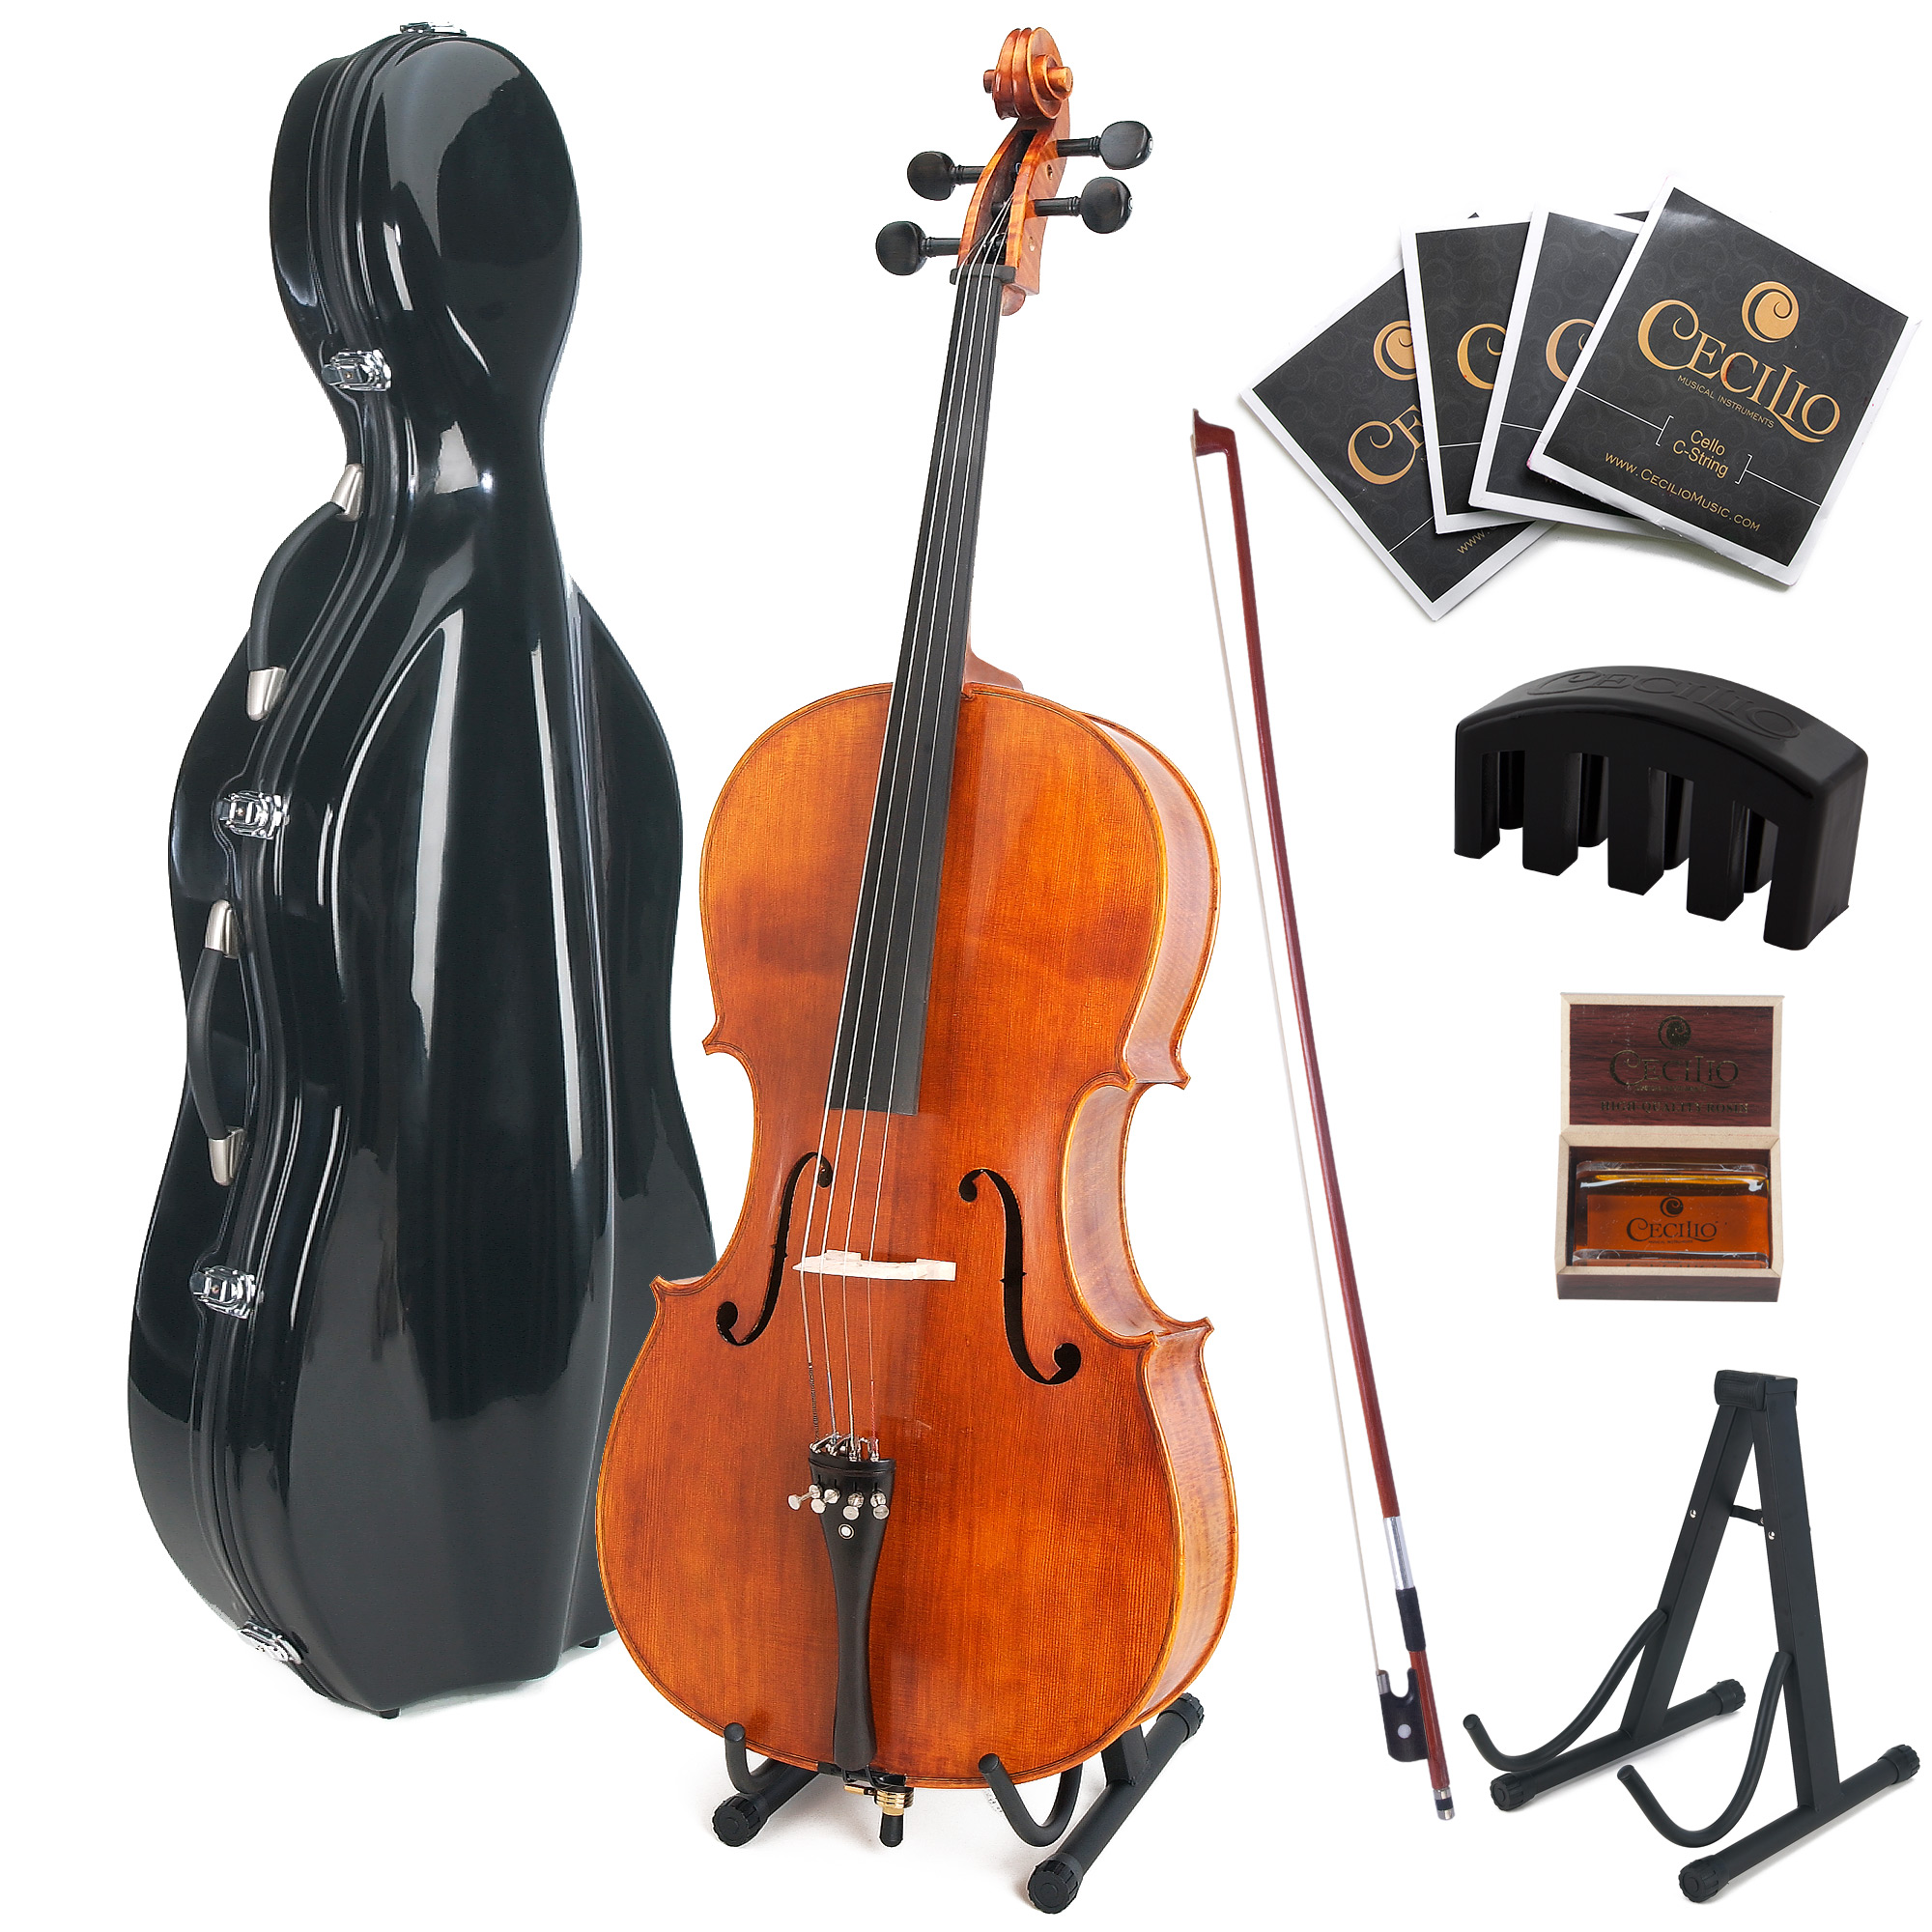 Cecilio CCO-600 Ebony Fitted Hand Oil-Rubbed Flamed Solid Wood Cello, with Cello Stand, Cello Mute and ABS Case, Full Size 4/4